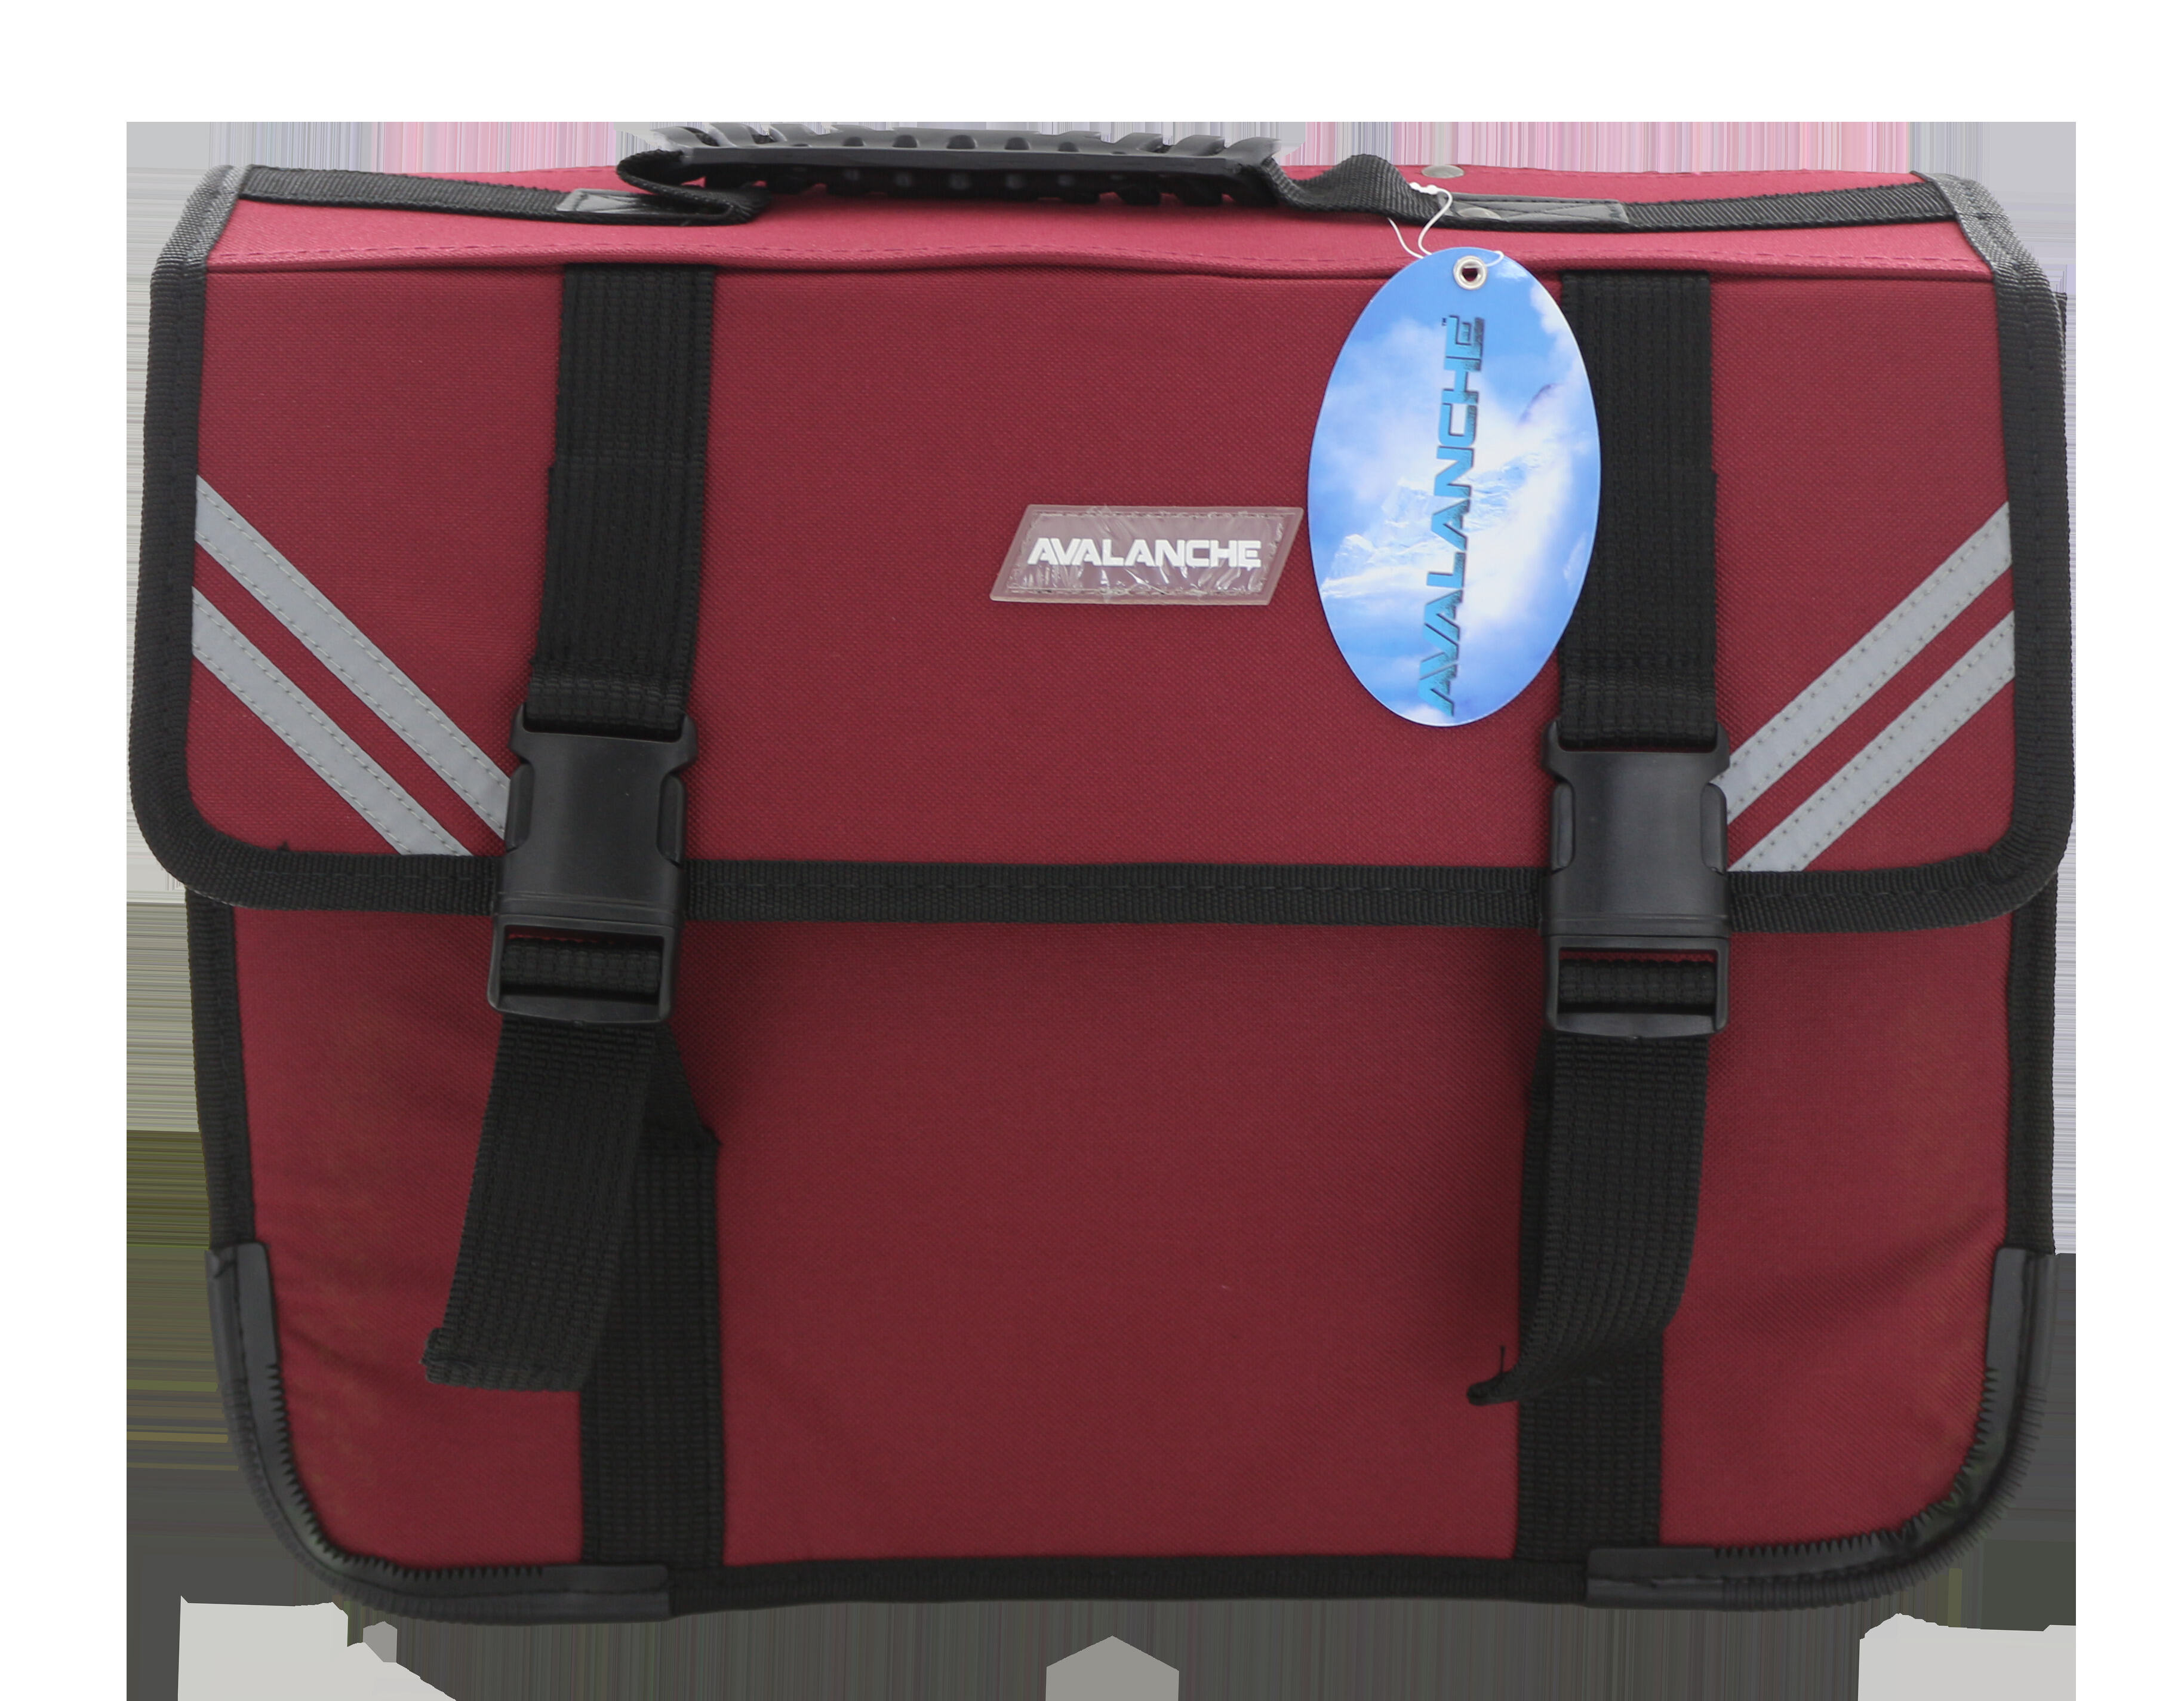 Avalanche Standard Student Suitcase - 7 Compartment - Maroon